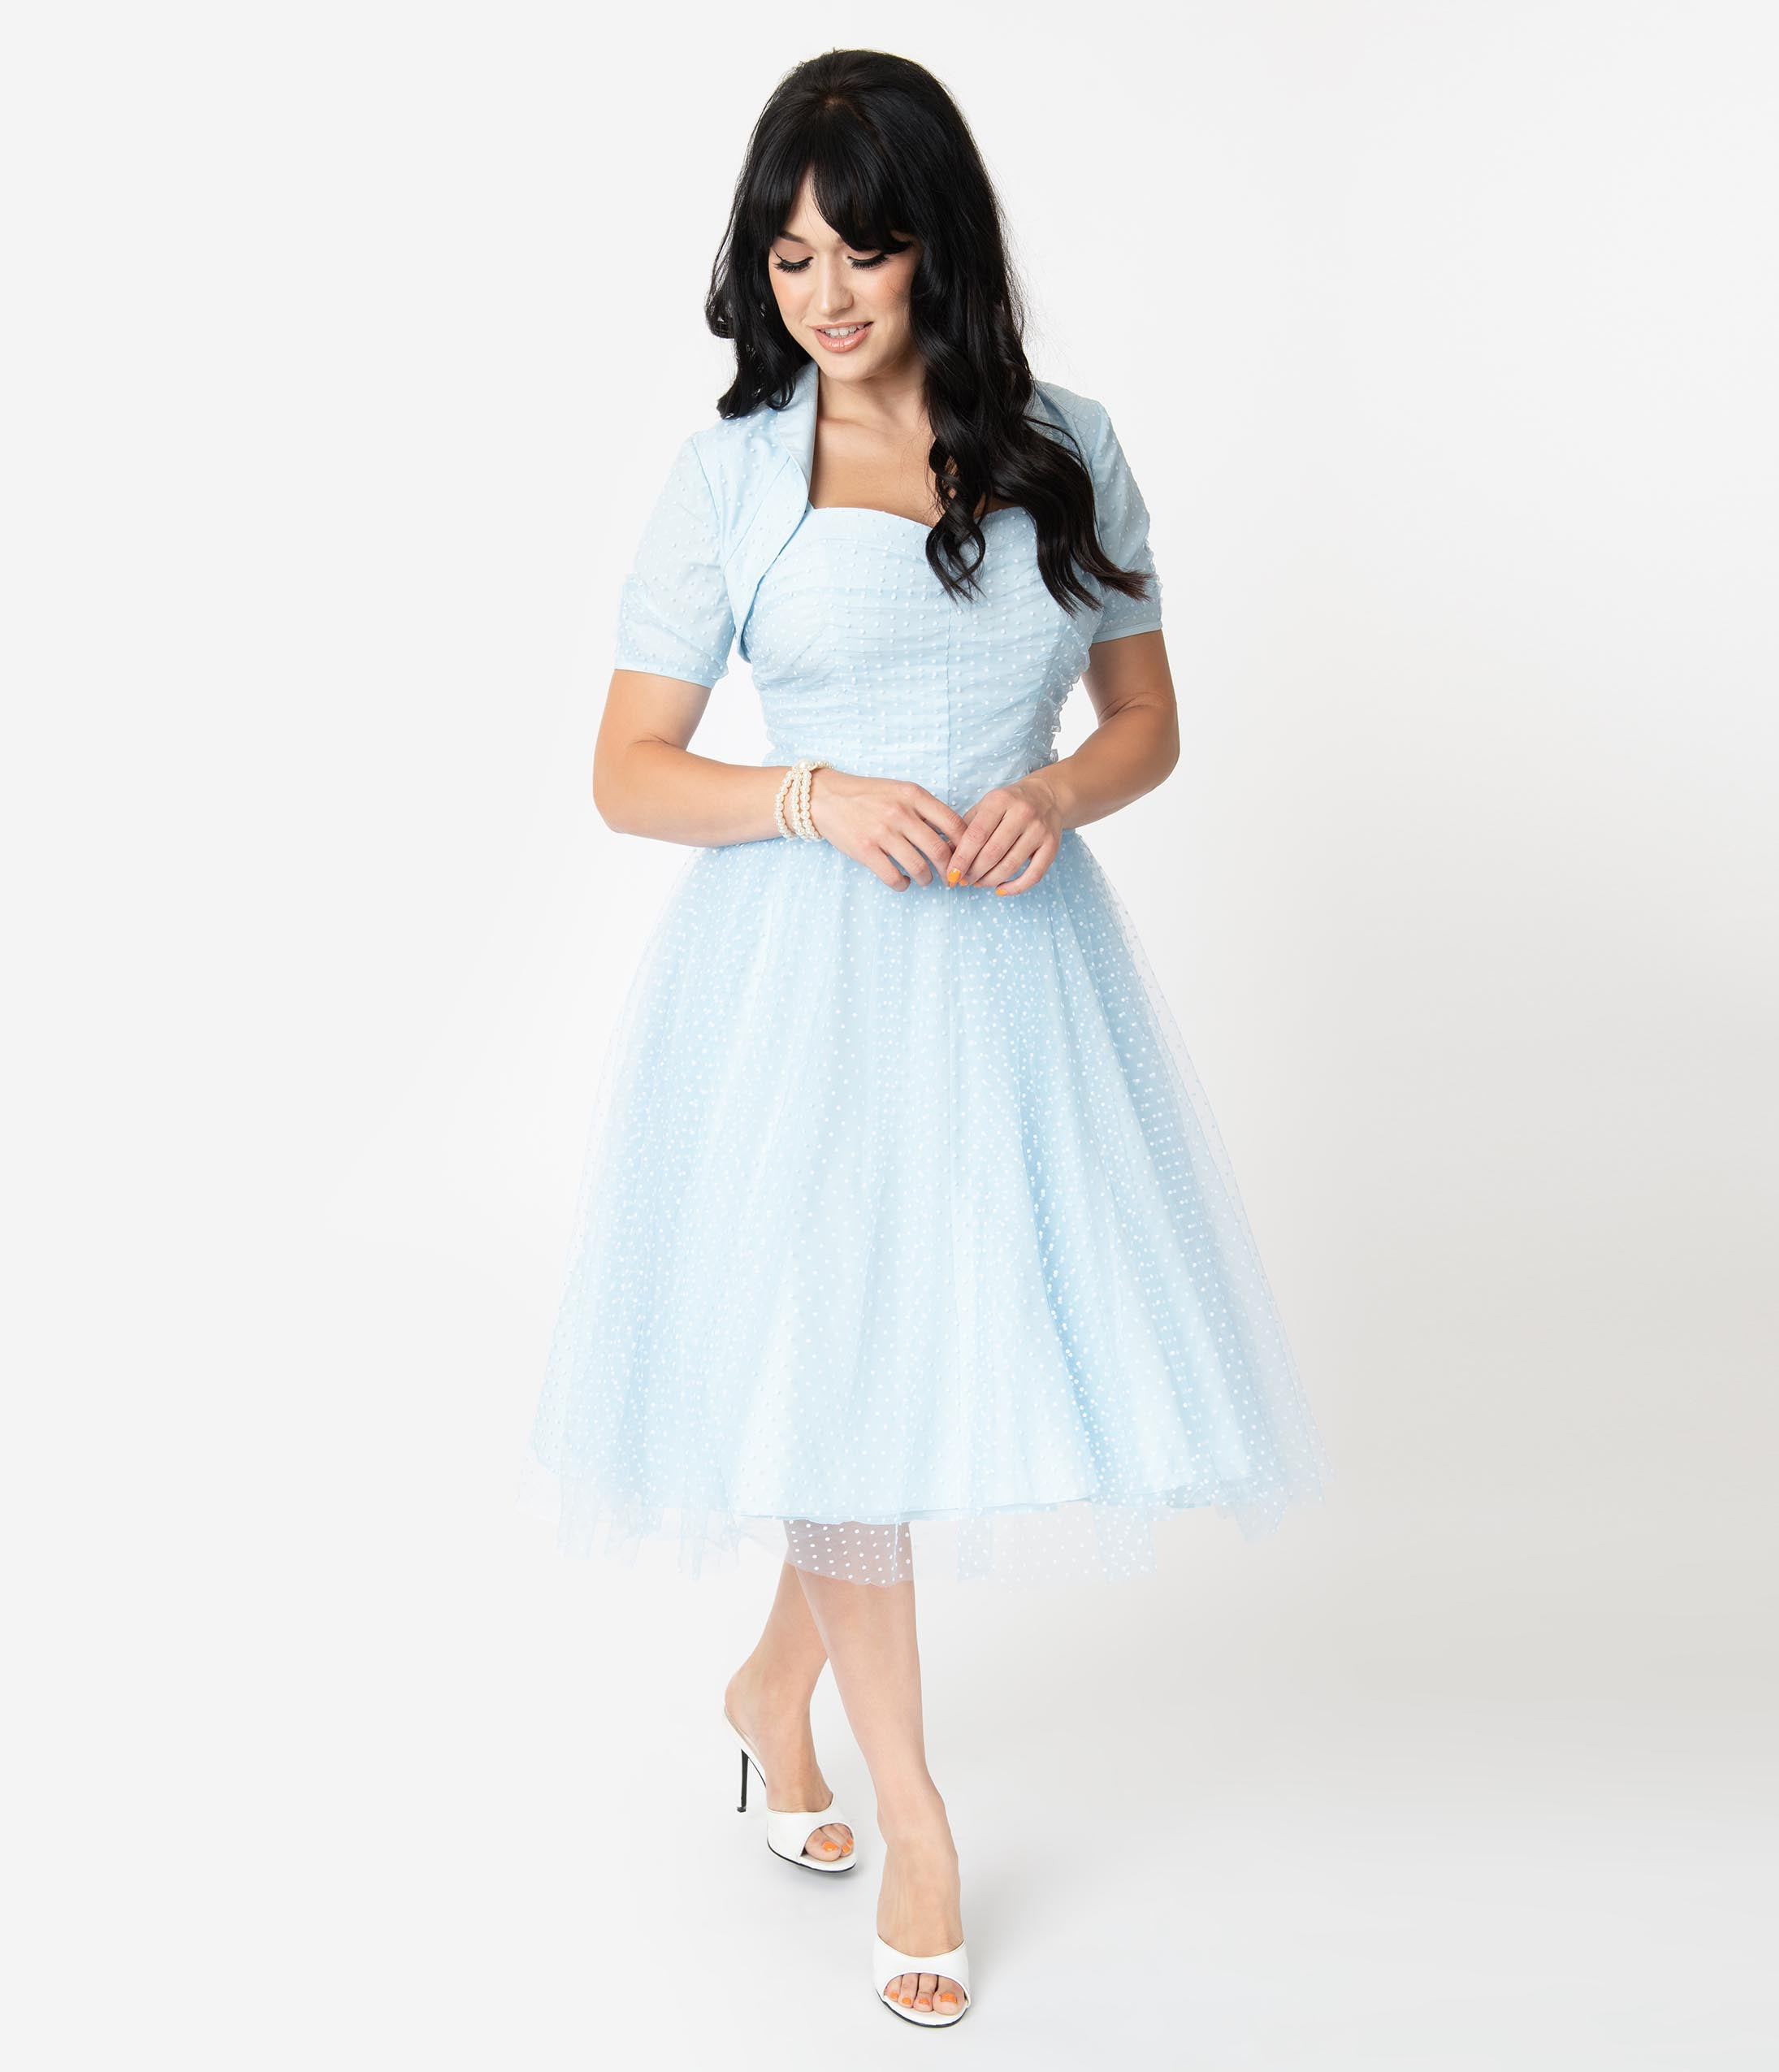 1950s Bridesmaid Dresses | 50s Bridesmaid Dresses I Love Lucy X Unique Vintage Light Blue Honeymoon Swing Dress $148.00 AT vintagedancer.com